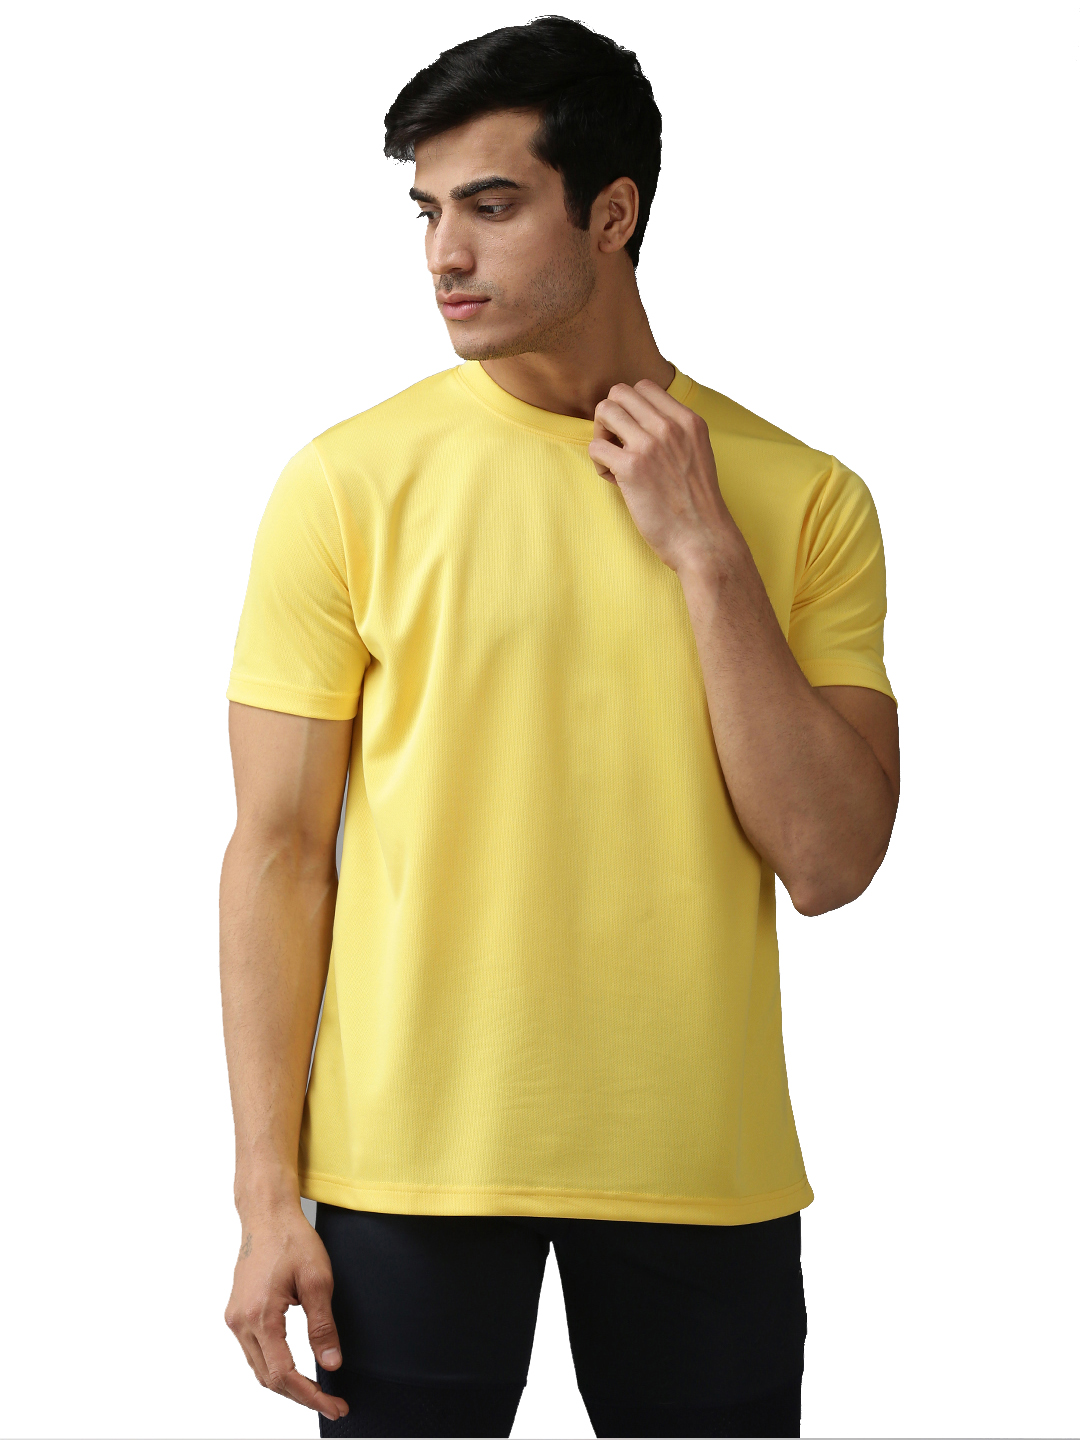 EPPE Men's Round Neck Half Sleeve Yellow Dryfit Micropolyester Active Performance Sports Tshirt